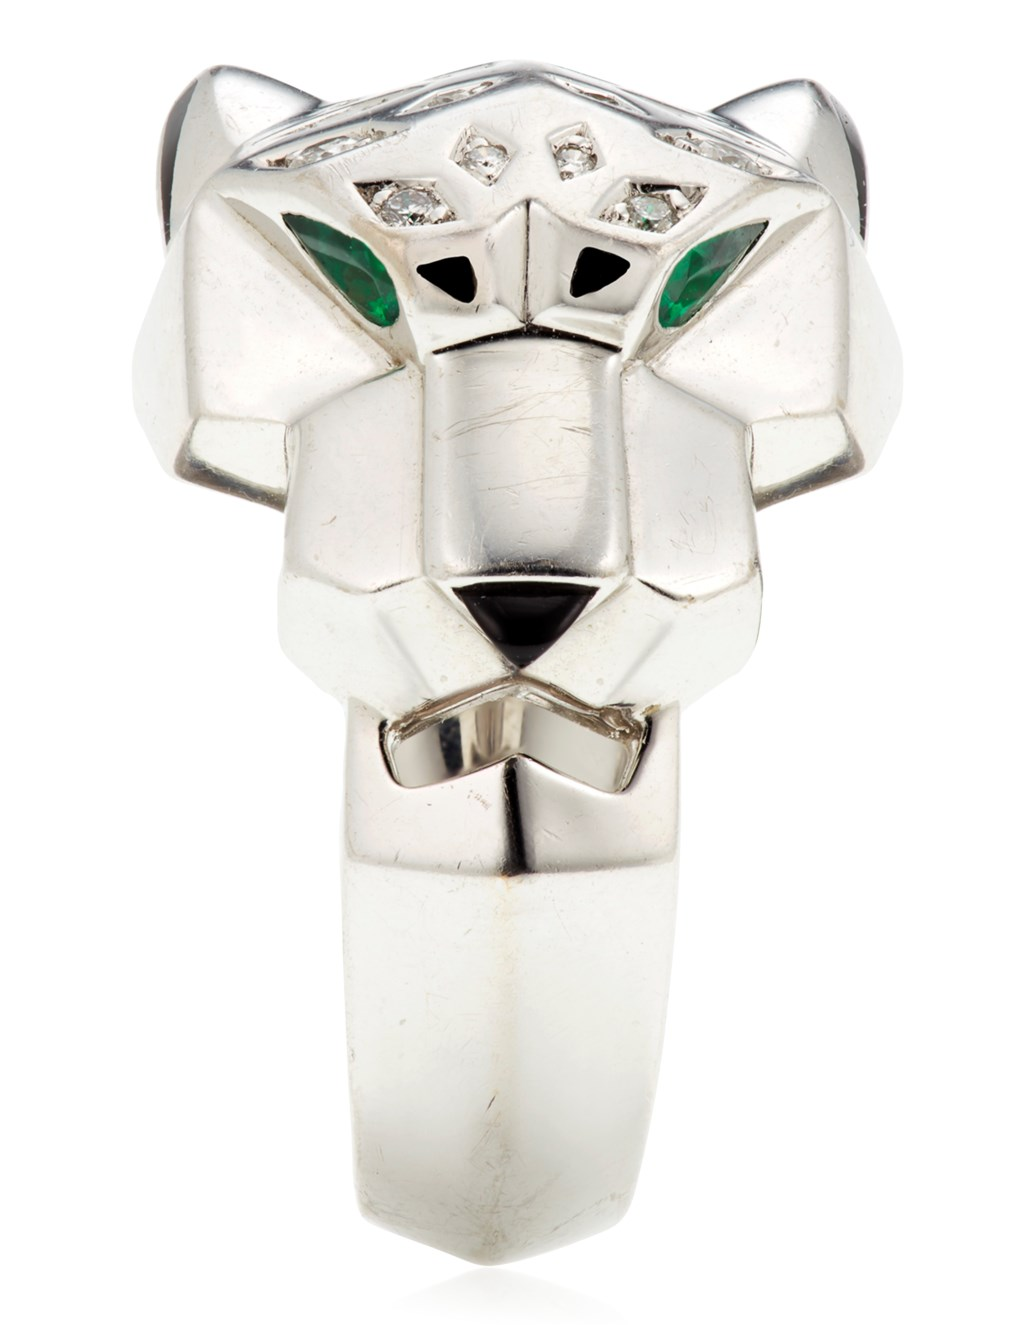 CARTIER DIAMOND, EMERALD AND ONYX 'PANTHÈRE' RING